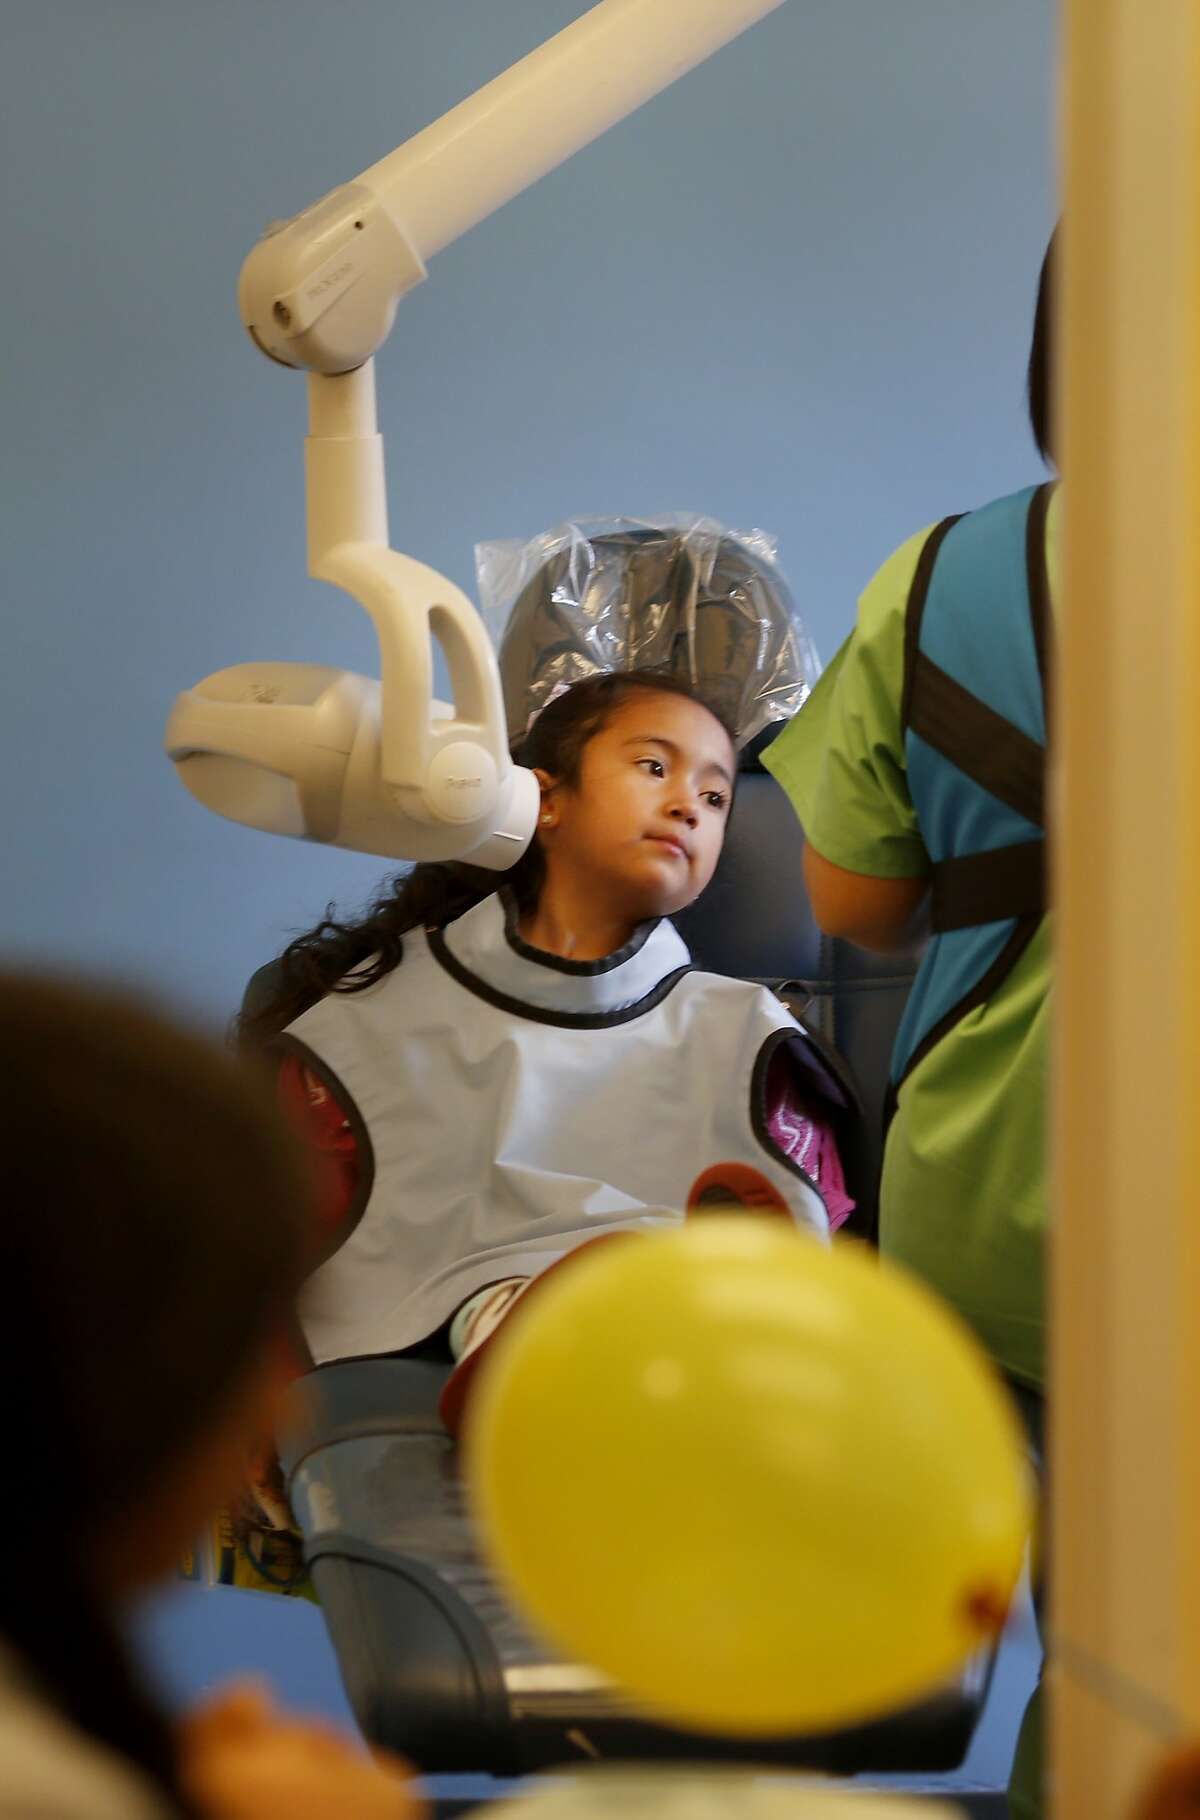 Little Rihana Guardado waits for her x-rays at the the Children's Choice dental office Thursday June 11, 2015. Public health experts want San Francisco, Calif. to be a cavity free zone. The Children's Choice Pediatric Dental Care is one of the few private dental clinics that accepts Medi-Cal coverage and regular insurance plans.